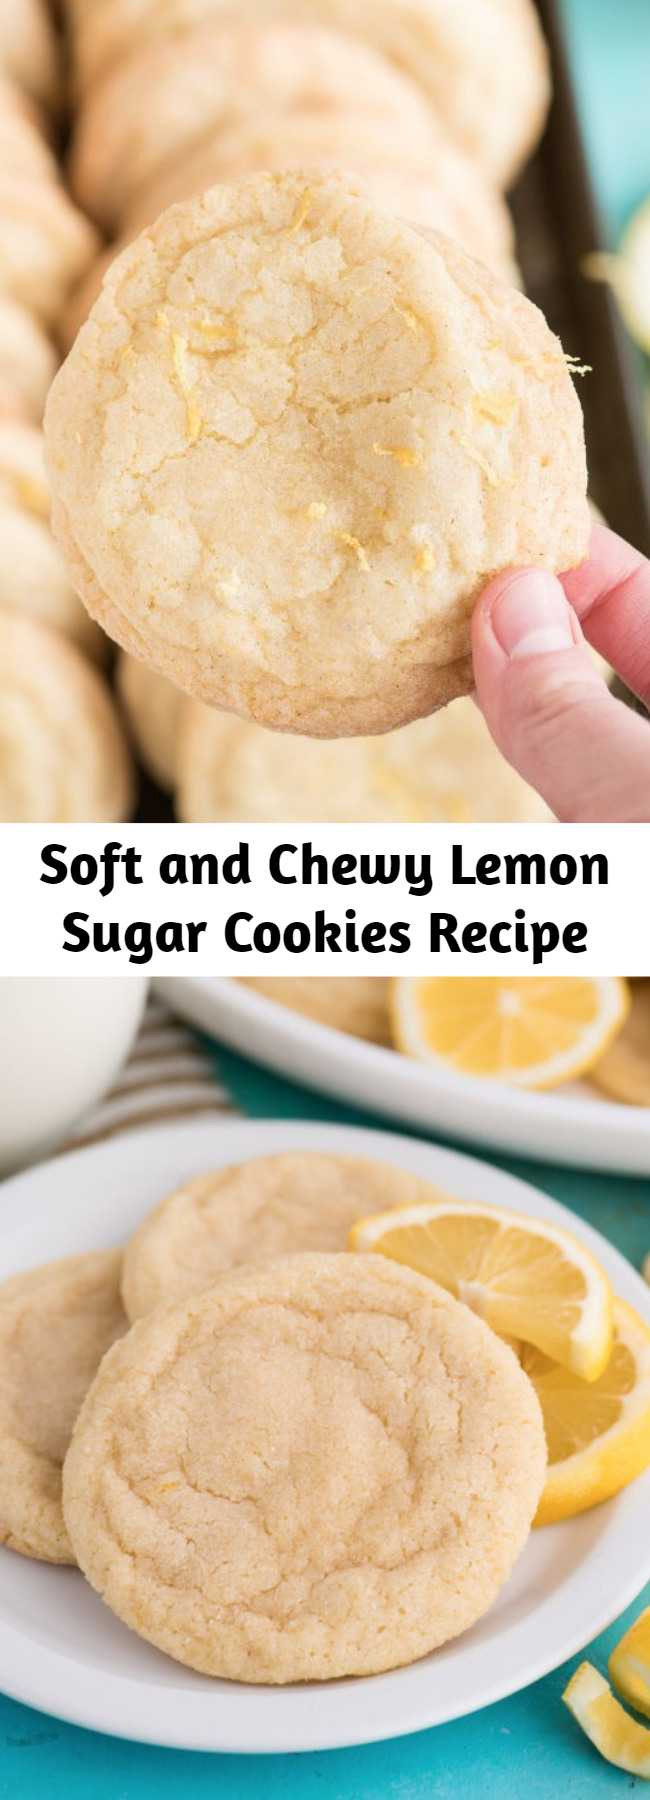 Soft and Chewy Lemon Sugar Cookies Recipe - Soft and Chewy Lemon Cookies are a crowd favorite cookie that you can make anytime of the year. These lemon sugar cookies are thick and chewy and easy to freeze. Easy to make in one bowl with fresh lemon and everyday ingredients.